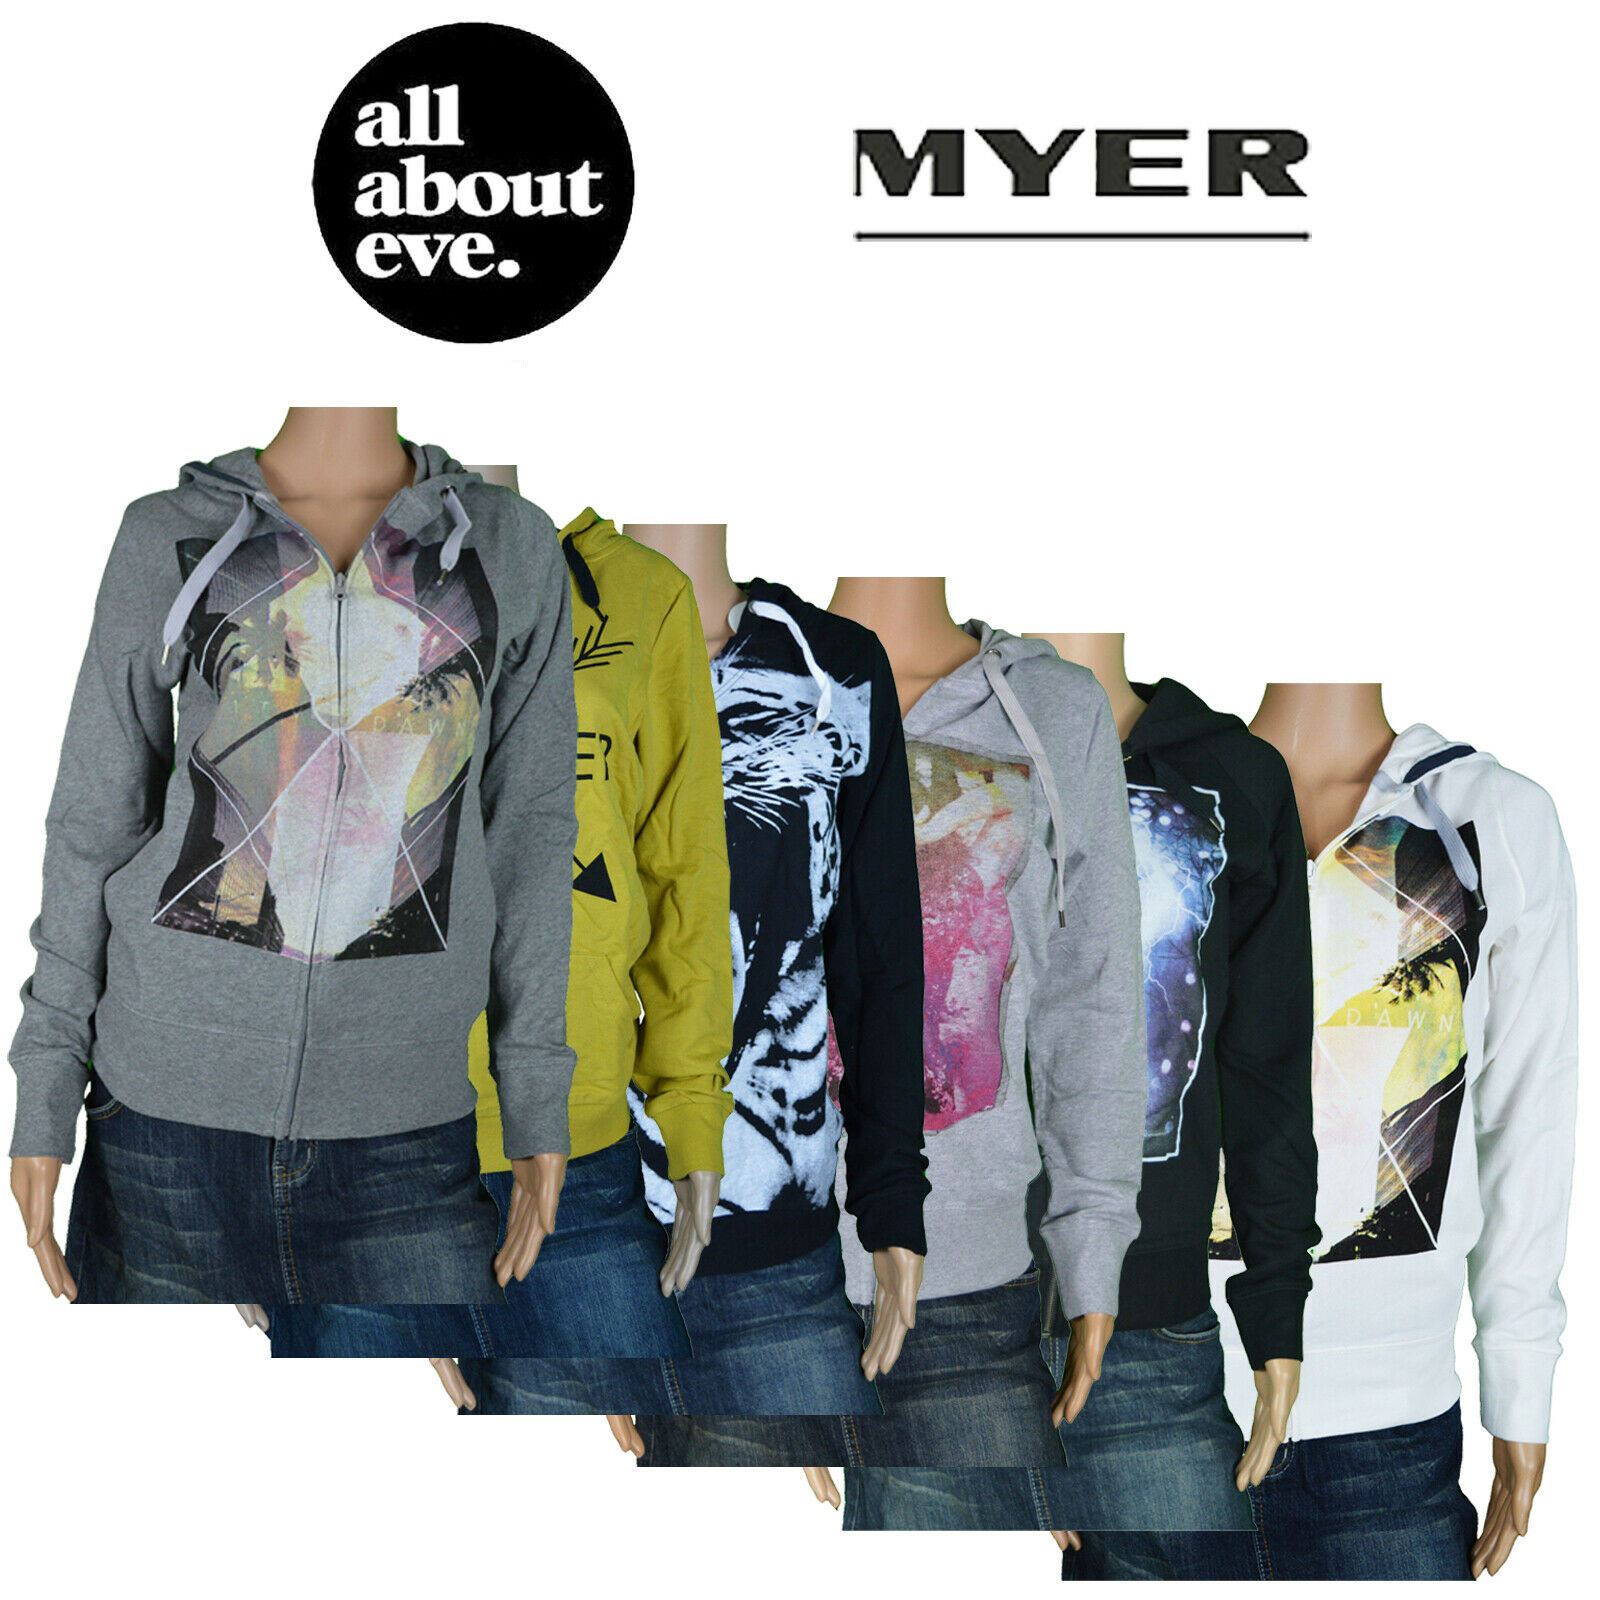 Myer All About Eve Little White Lie Fashion Hoodie Jumpers Winter Zip Graphic